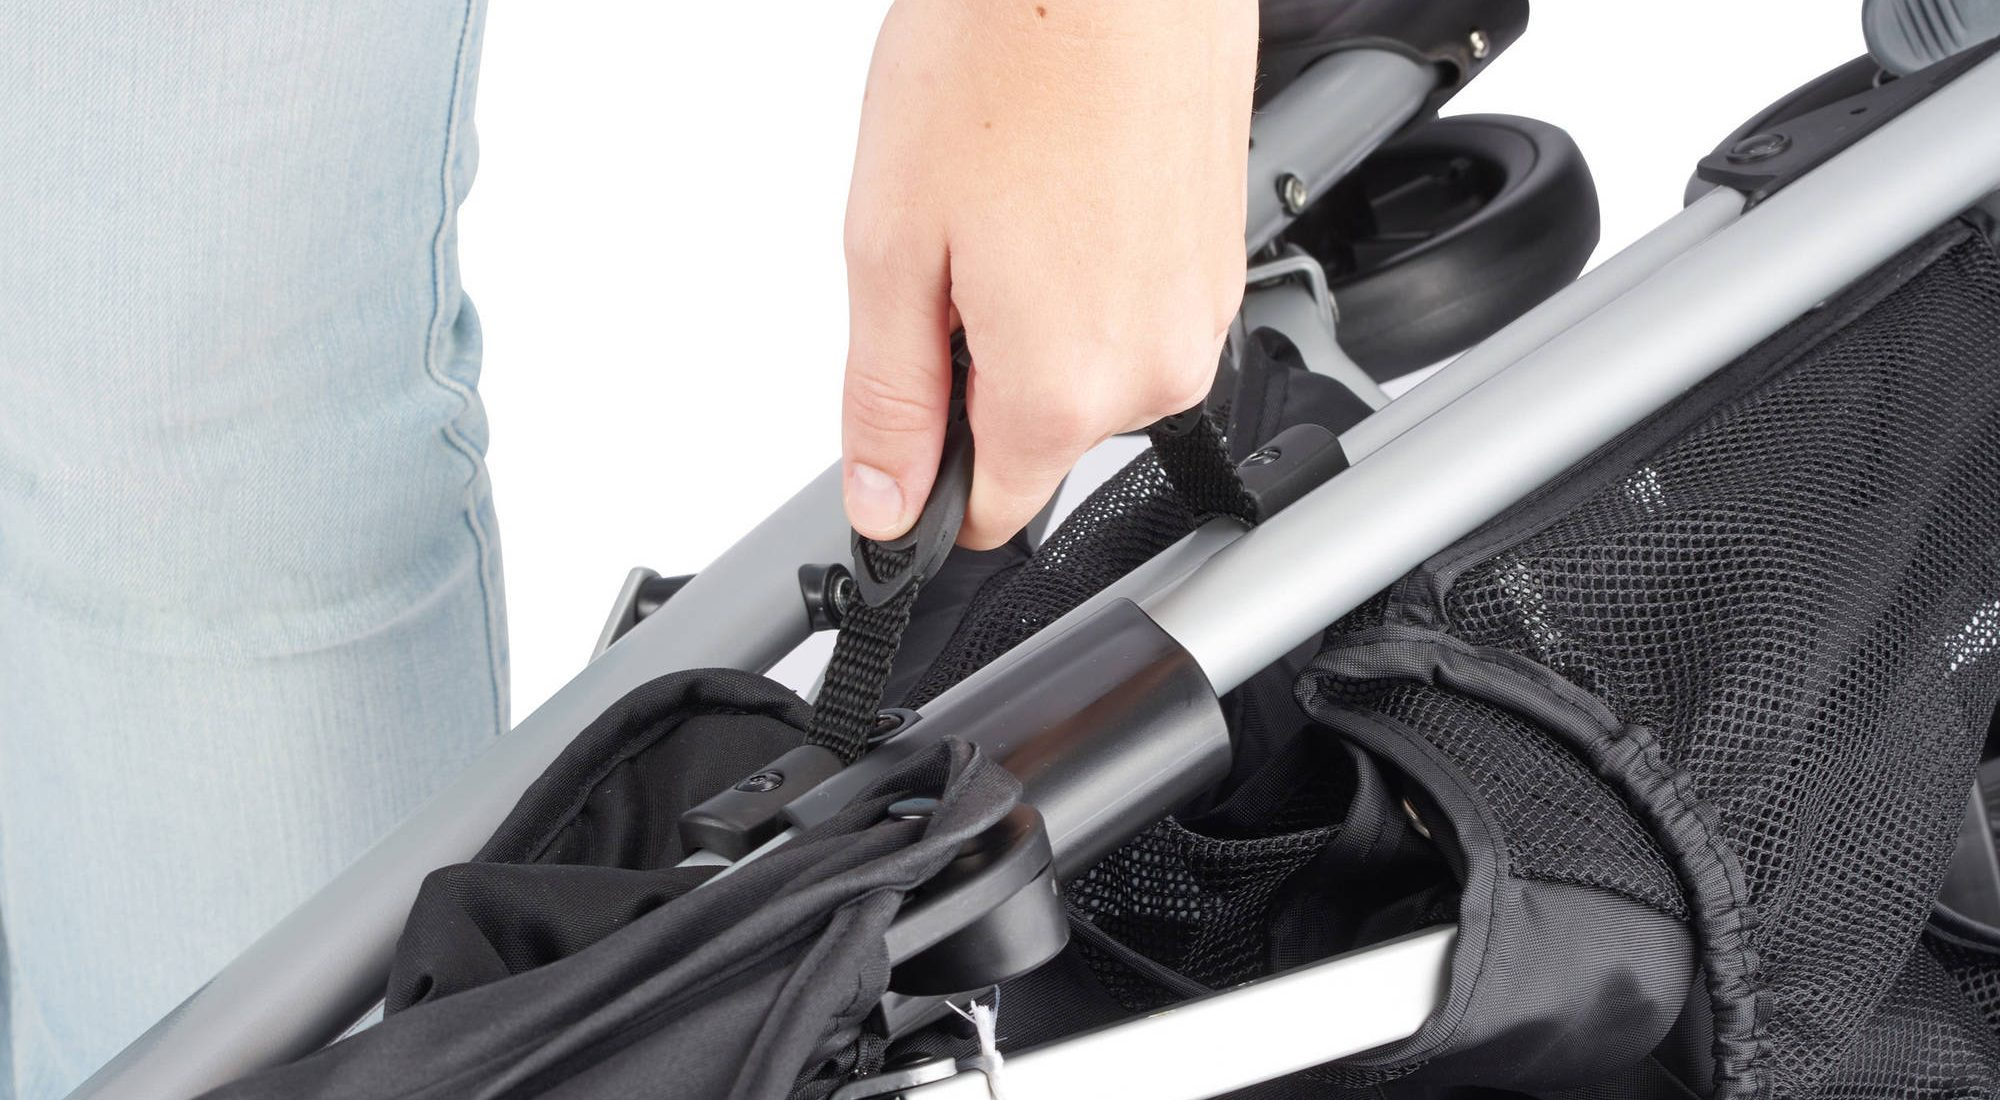 Evenflo Minno Stroller Review